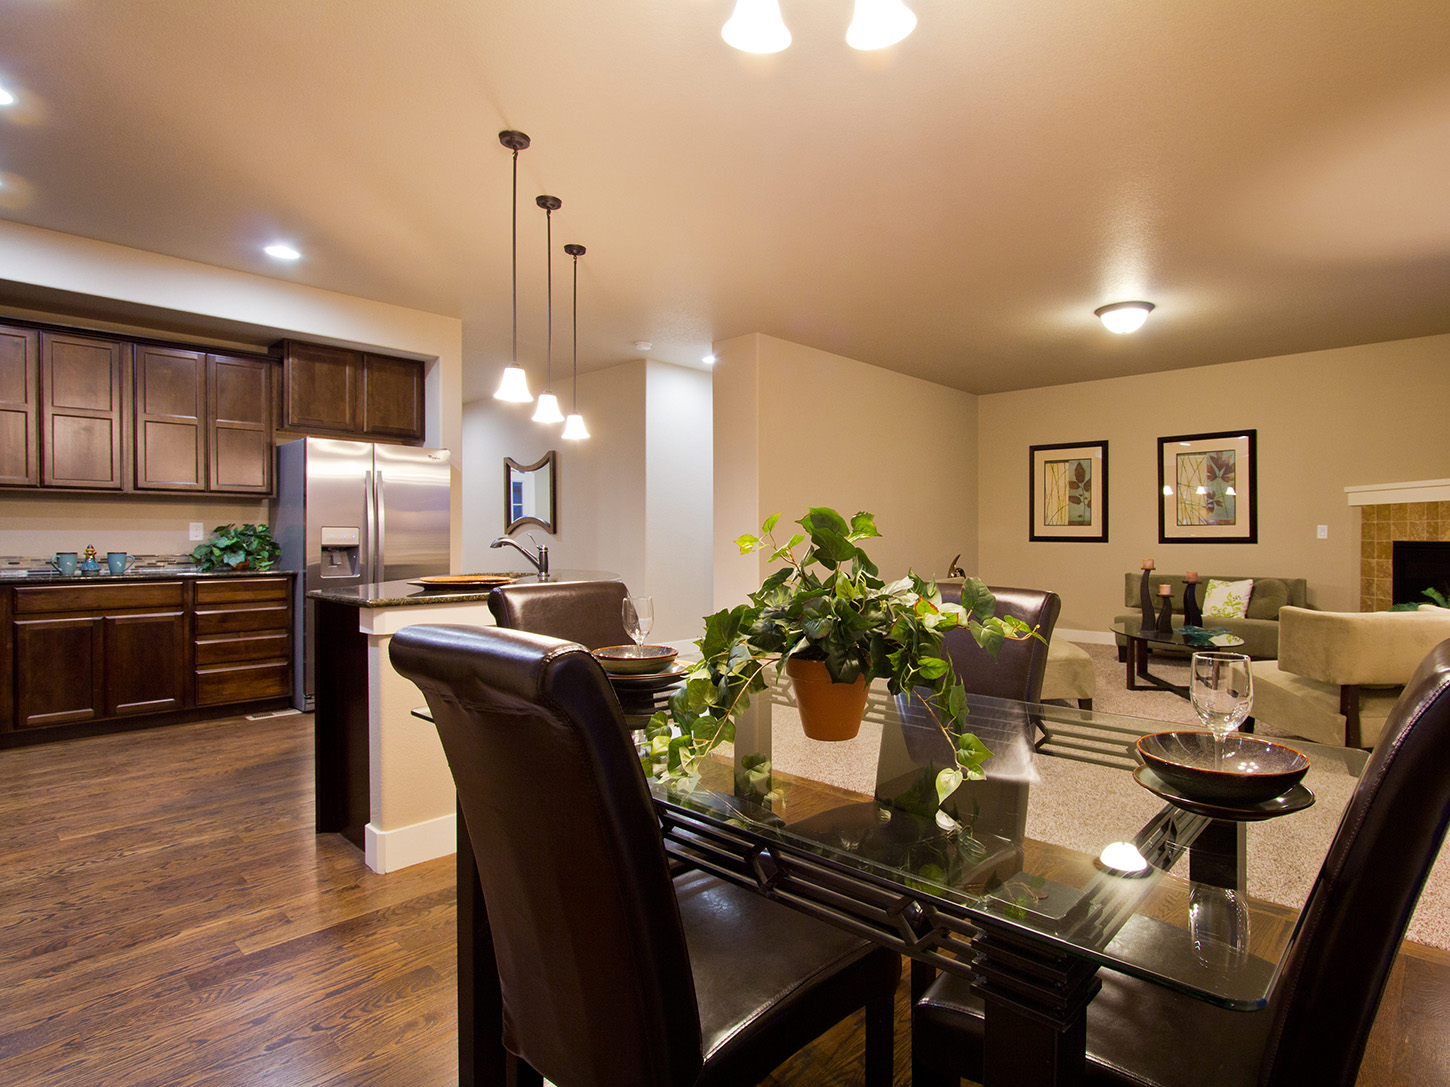 09-glendale-fort_collins-kitchen_dining-new_home